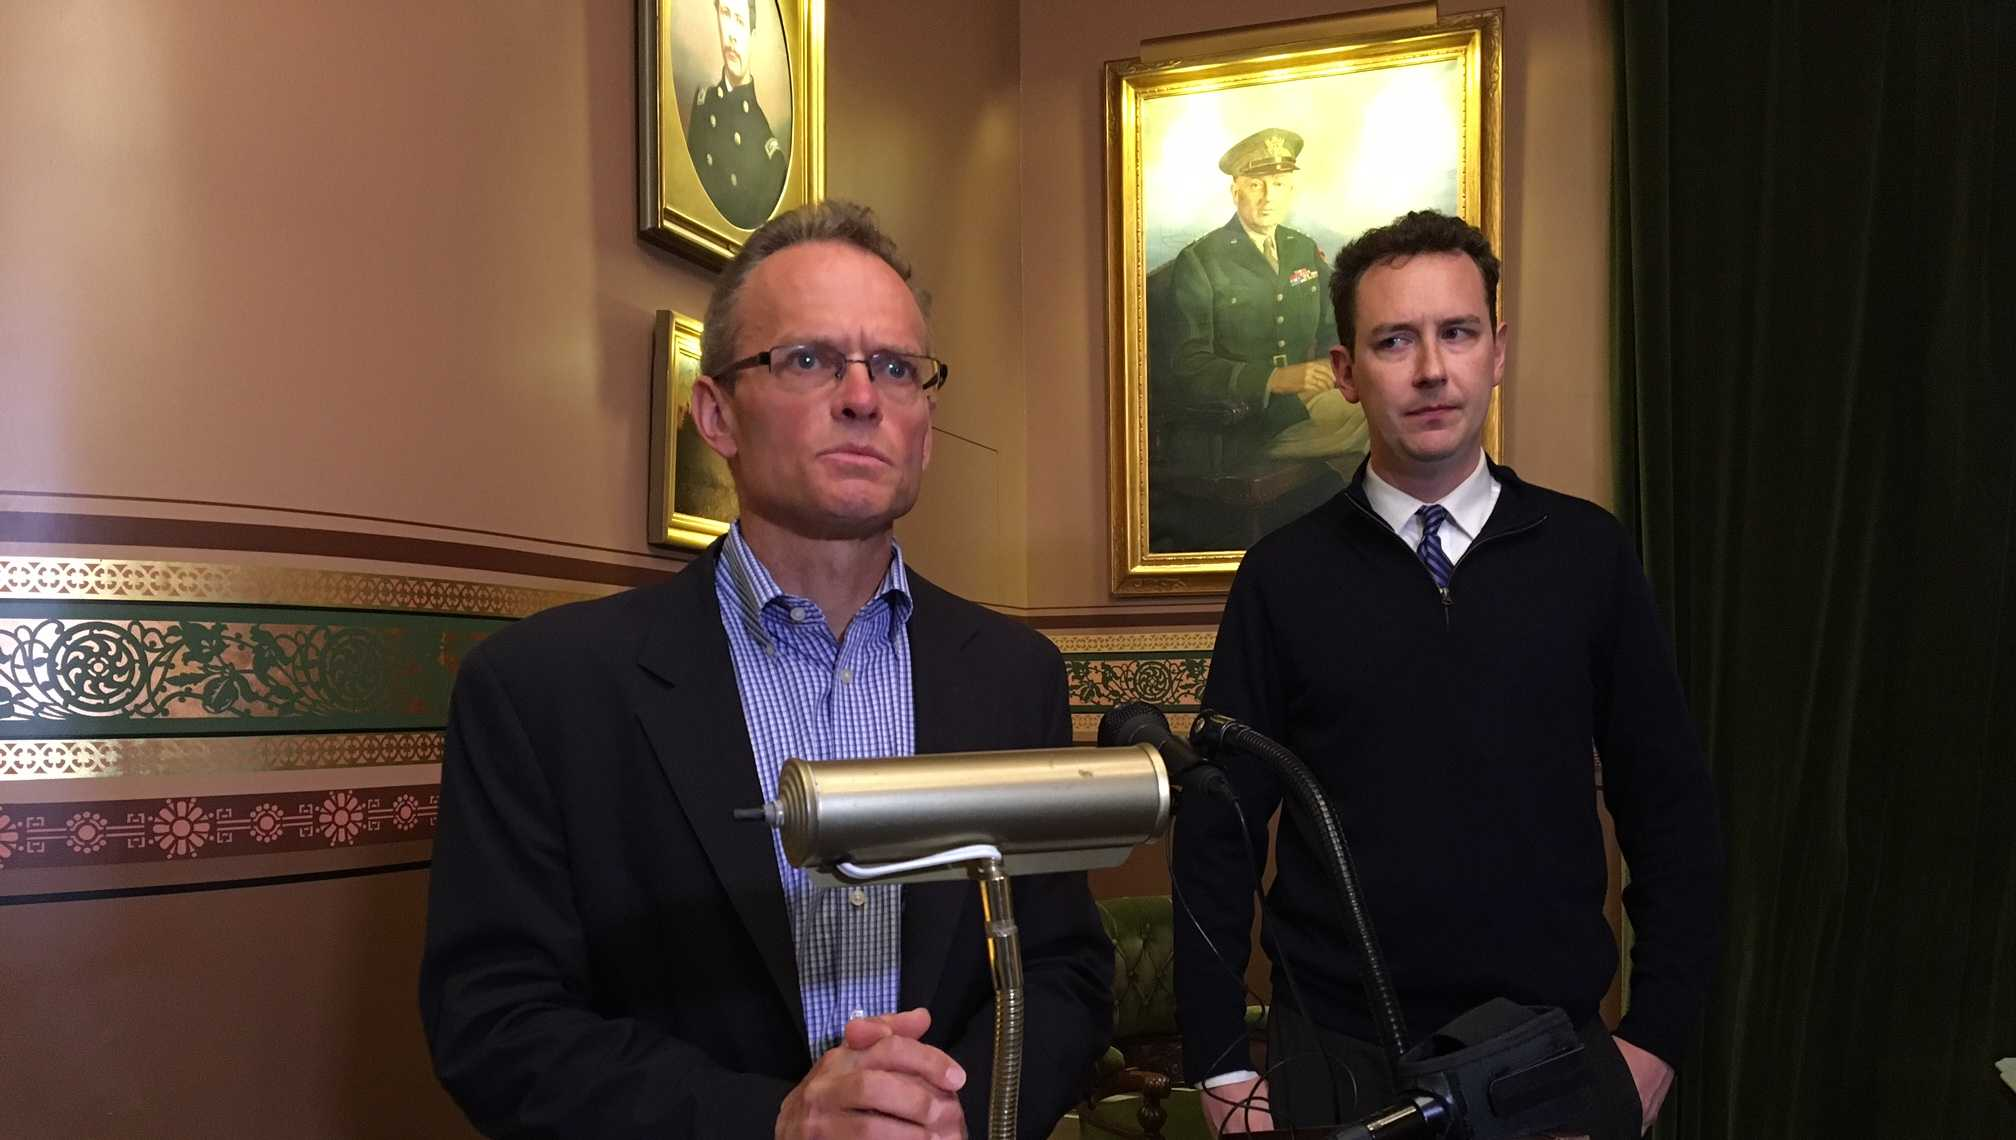 Democratic Party leaders Willem Jewett and Conor Casey hold a news conference at the Statehouse.